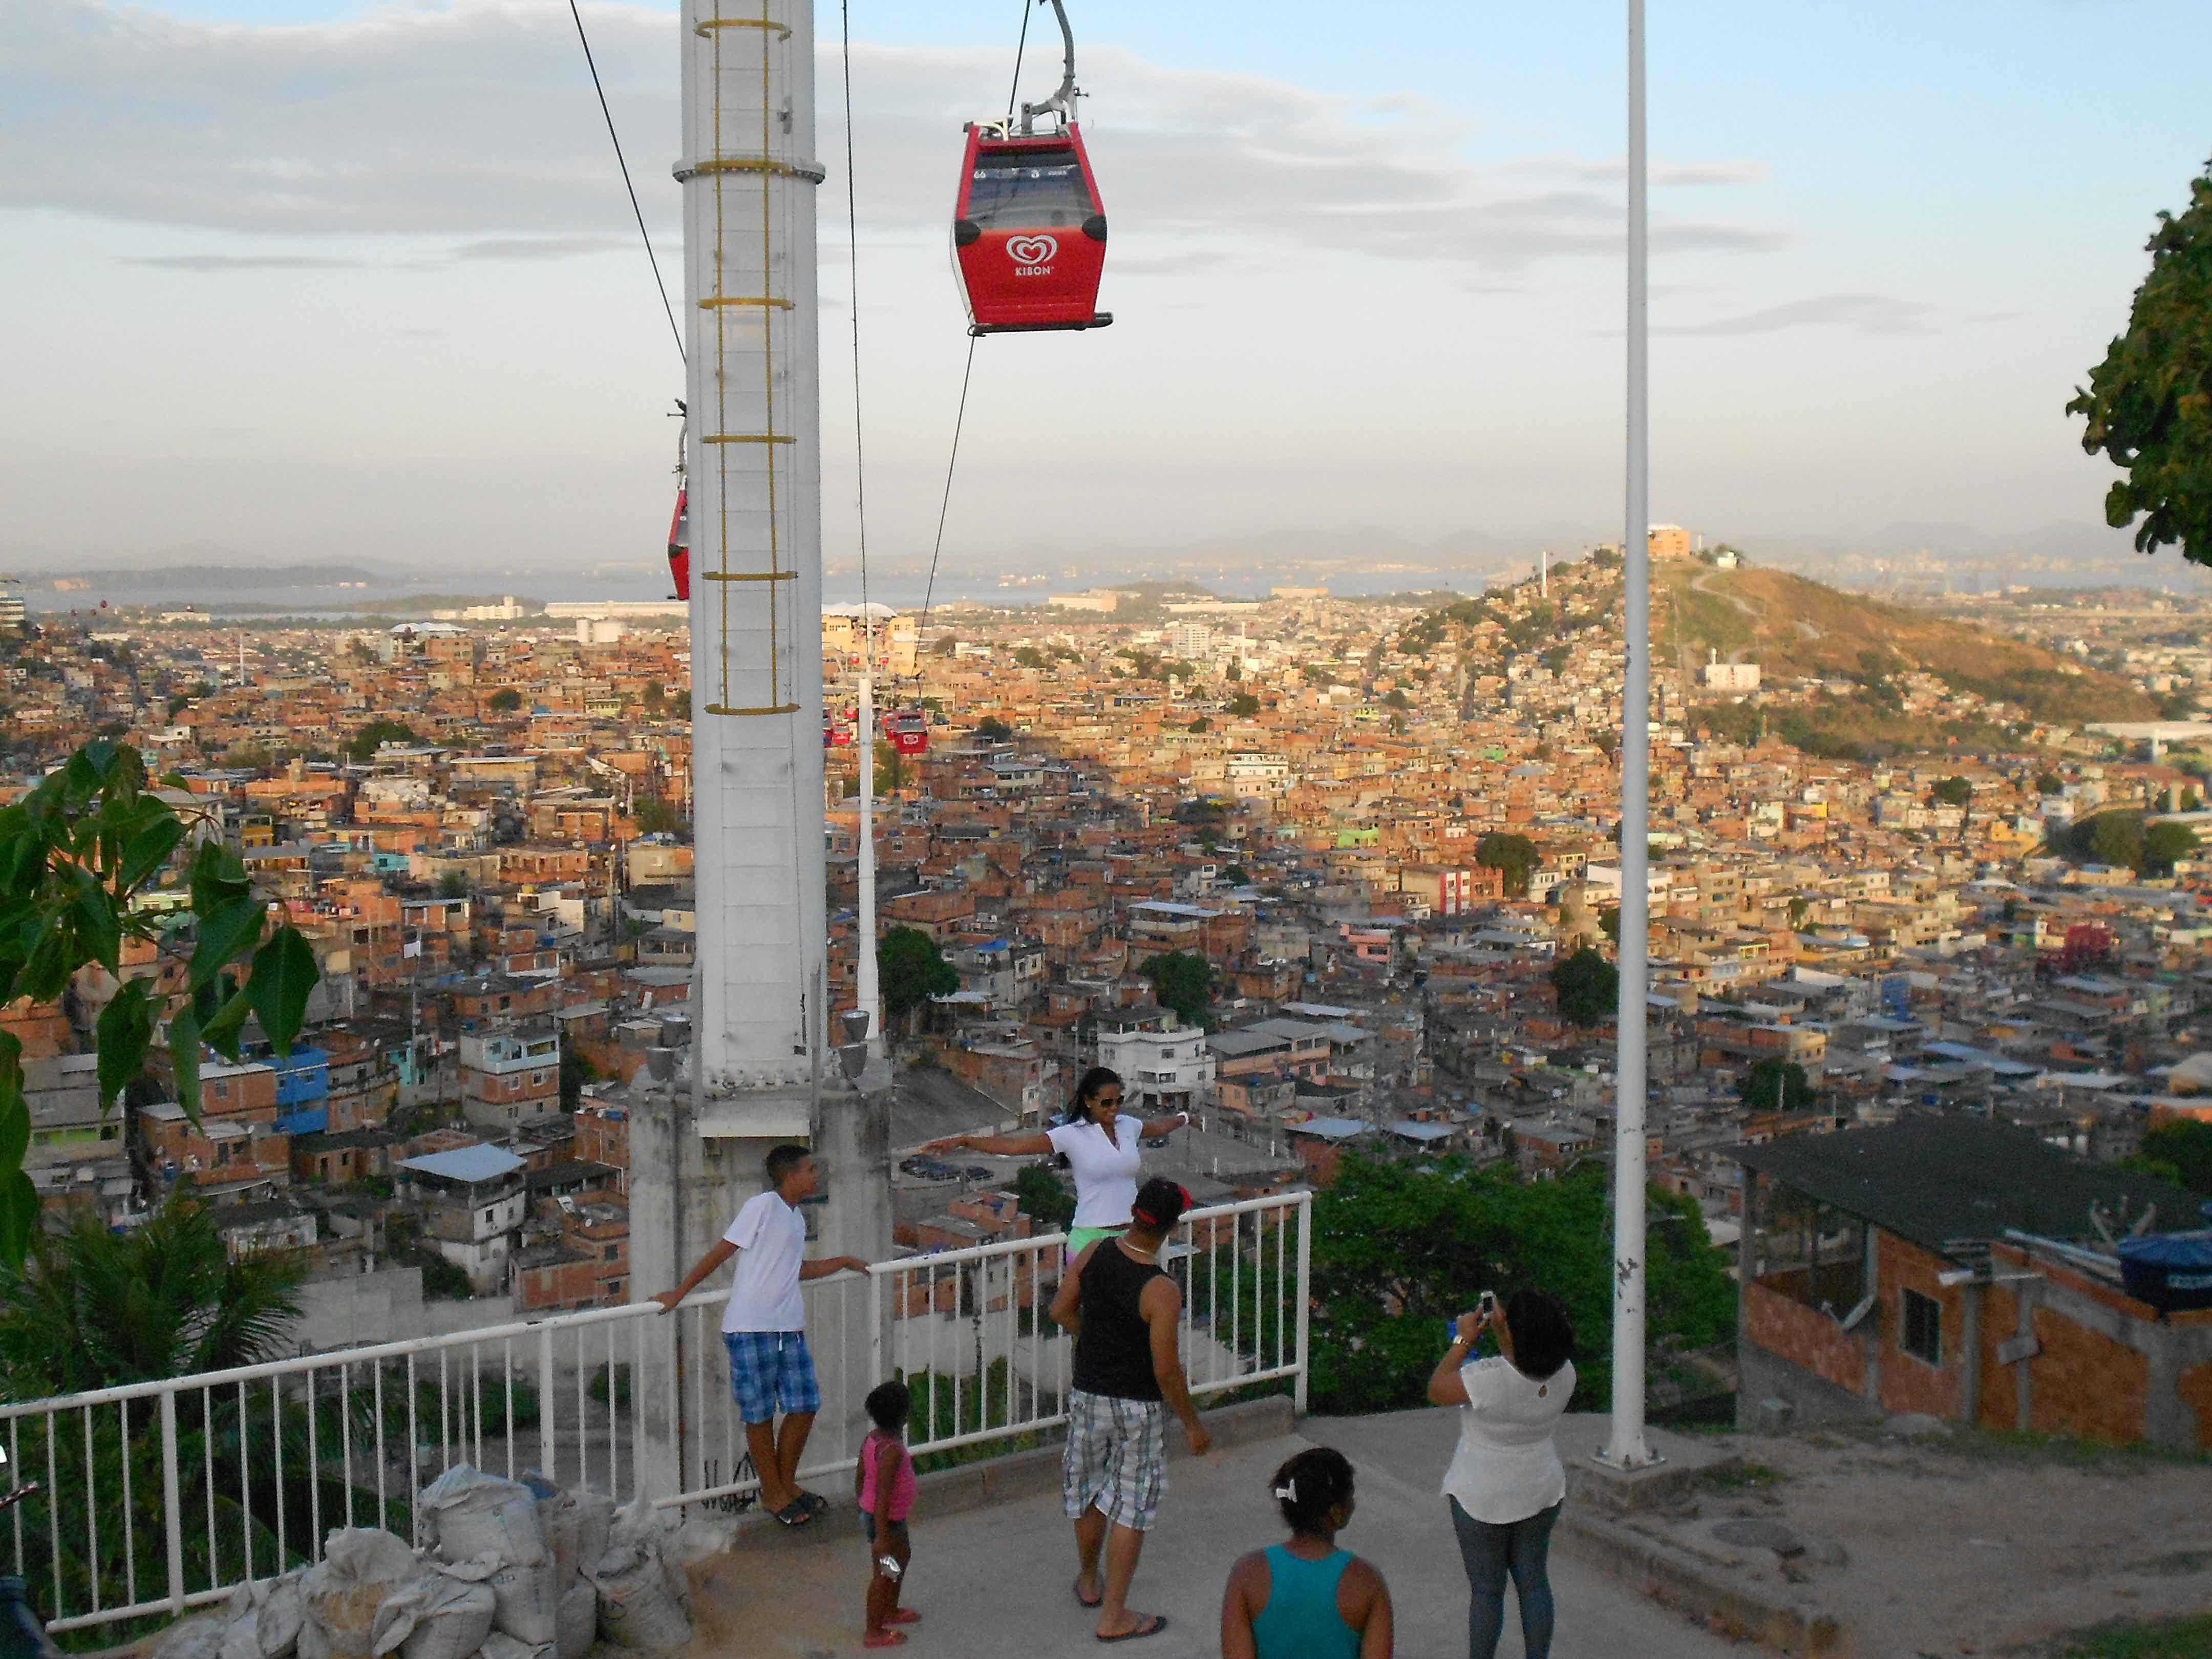 Tourists Posing in front of the Cable Car of Complexo Alemao, Rio De Janeiro